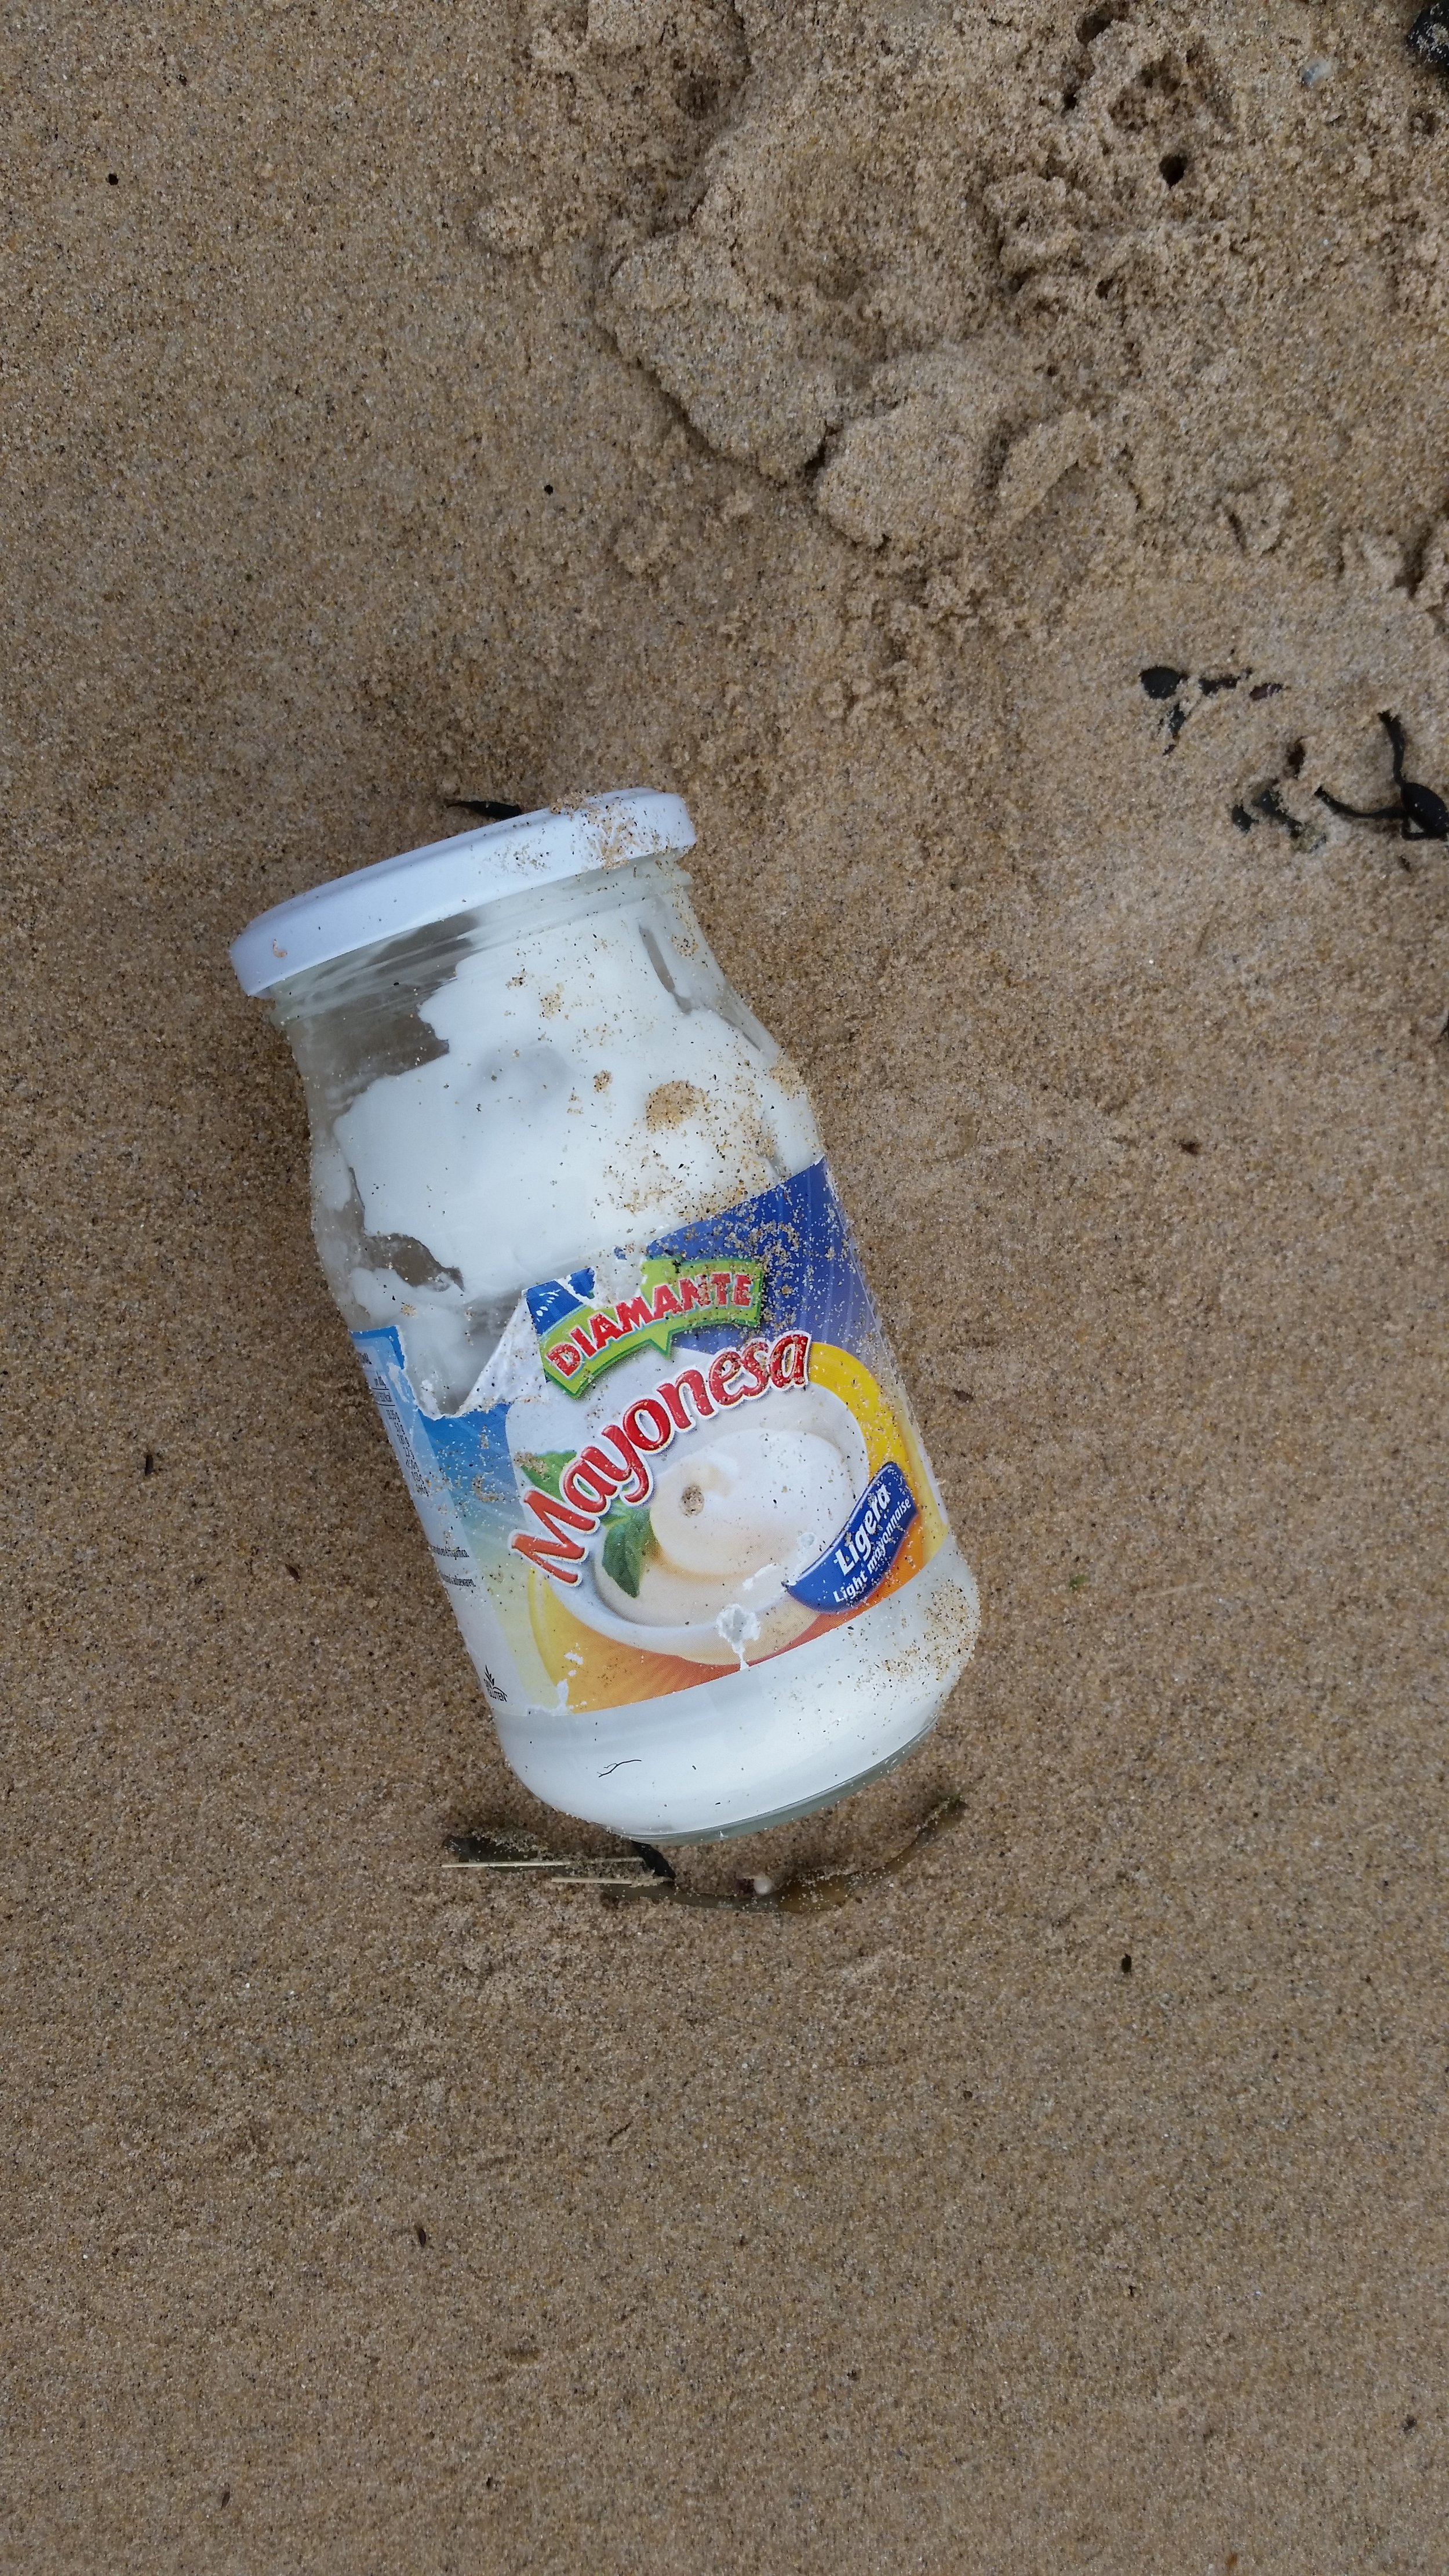 Spanish (we think) Mayonnaise jar, with Mayonnaise stilll in it!